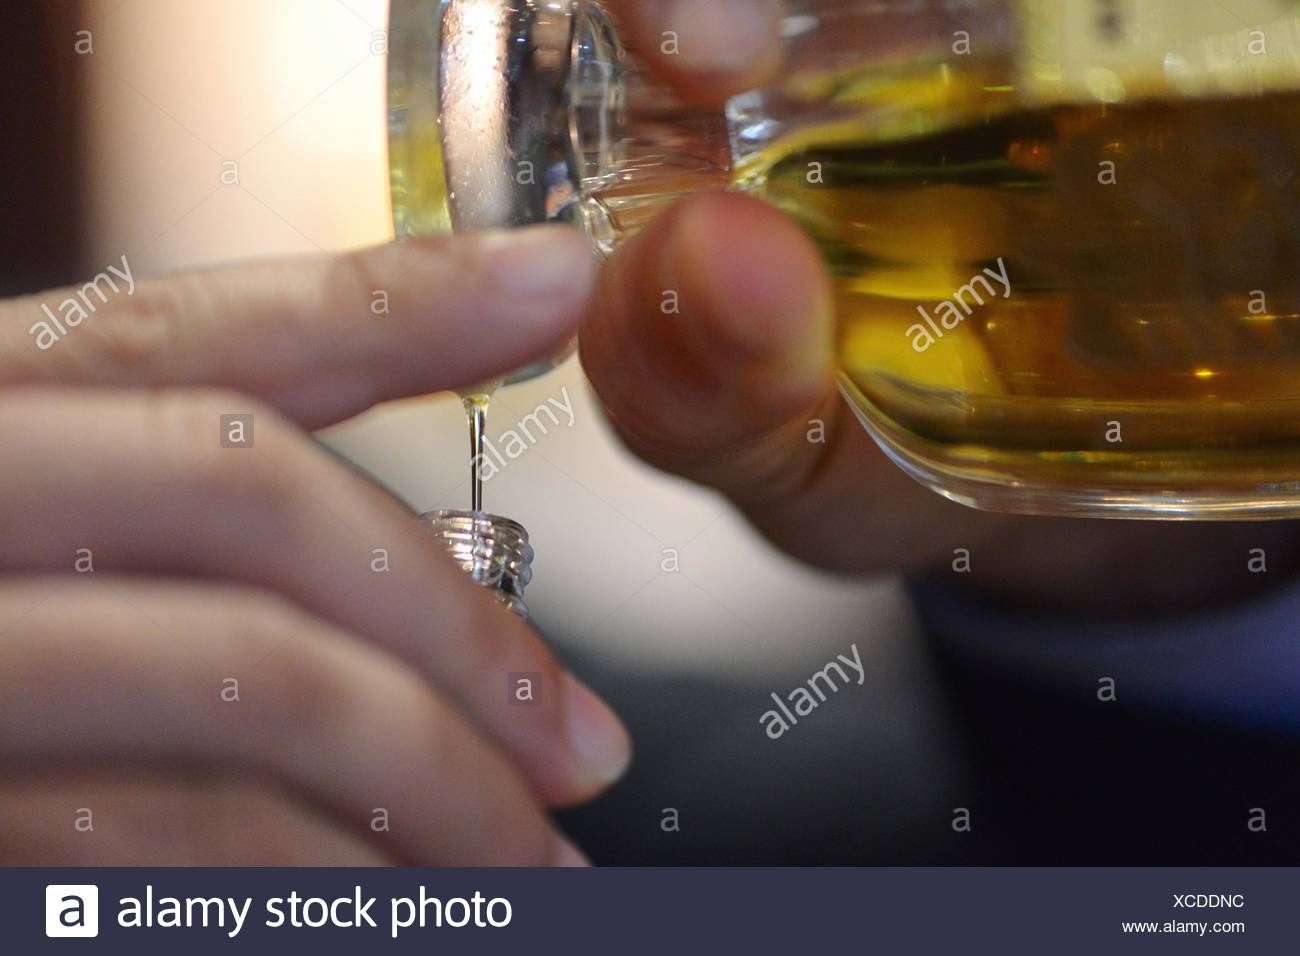 Cropped Image Of Hand Pouring Perfume In Bottle - Stock Image